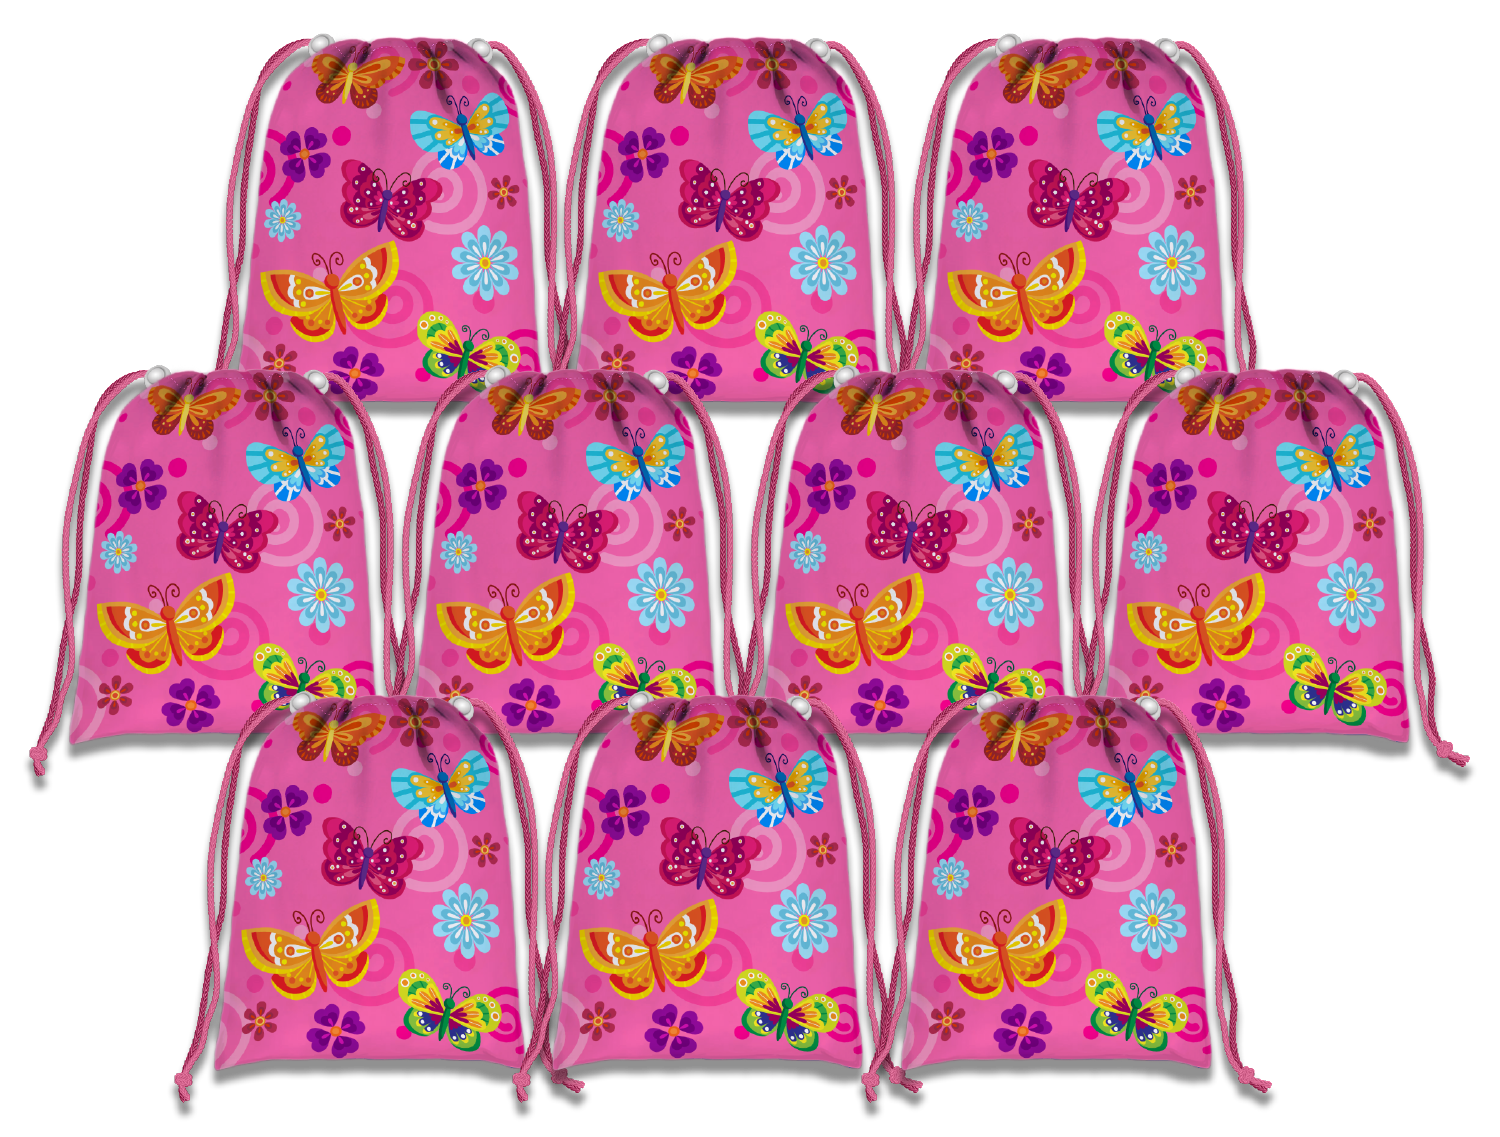 Pink Butterfly Drawstring Tote Bag (10 Pack) - BirthdayGalore.com